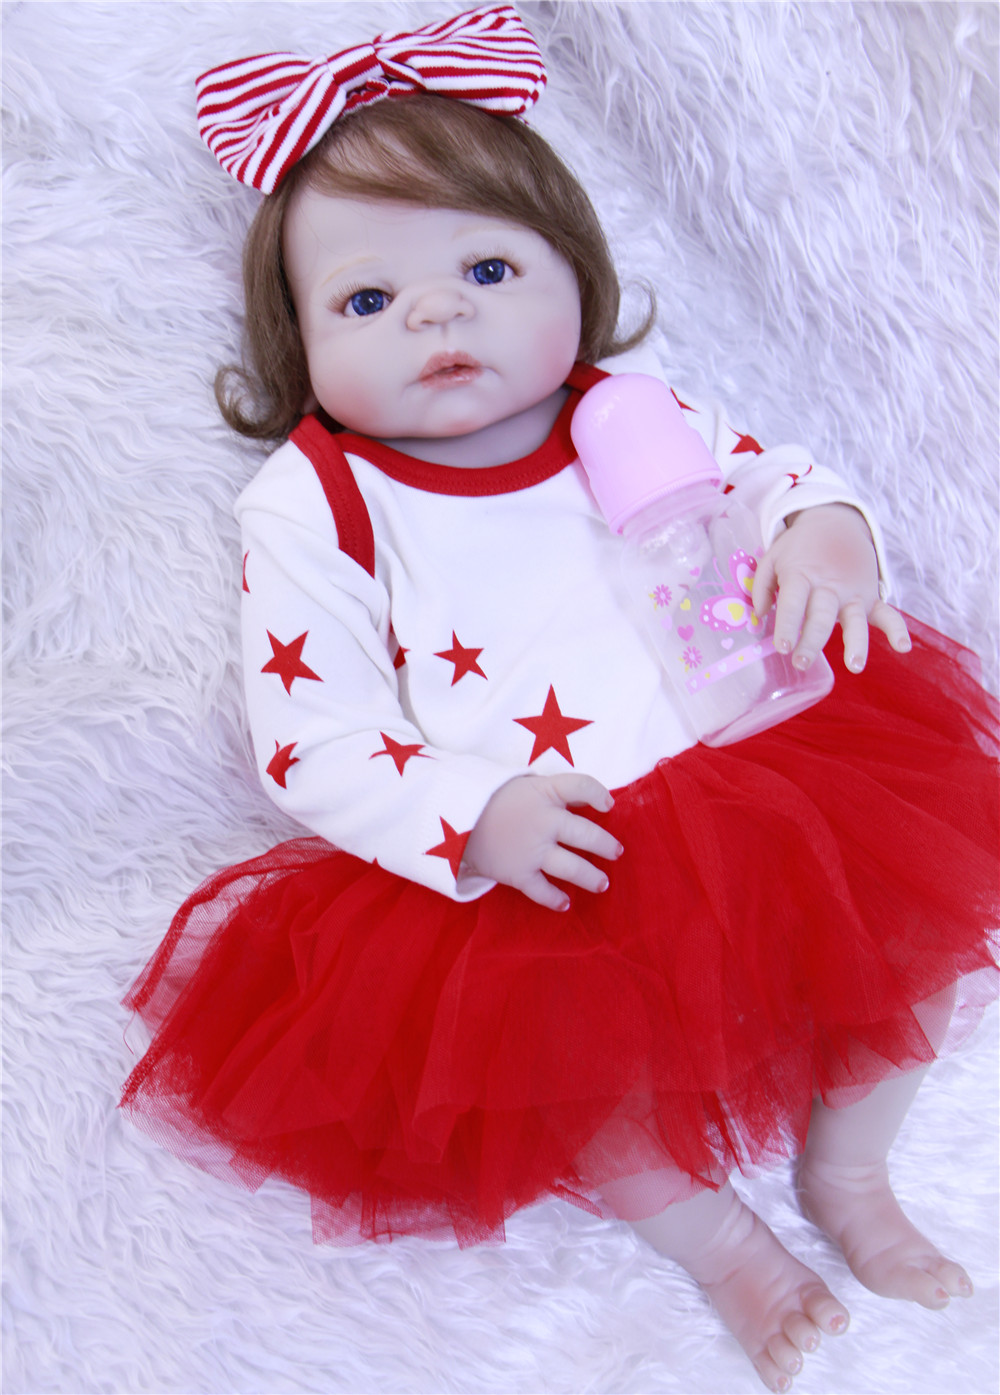 Reborn girl dolls 23 full silicone reborn baby dolls toys lifelike children gift bathe toy fashion doll bebe-reborn bonecas Reborn girl dolls 23 full silicone reborn baby dolls toys lifelike children gift bathe toy fashion doll bebe-reborn bonecas